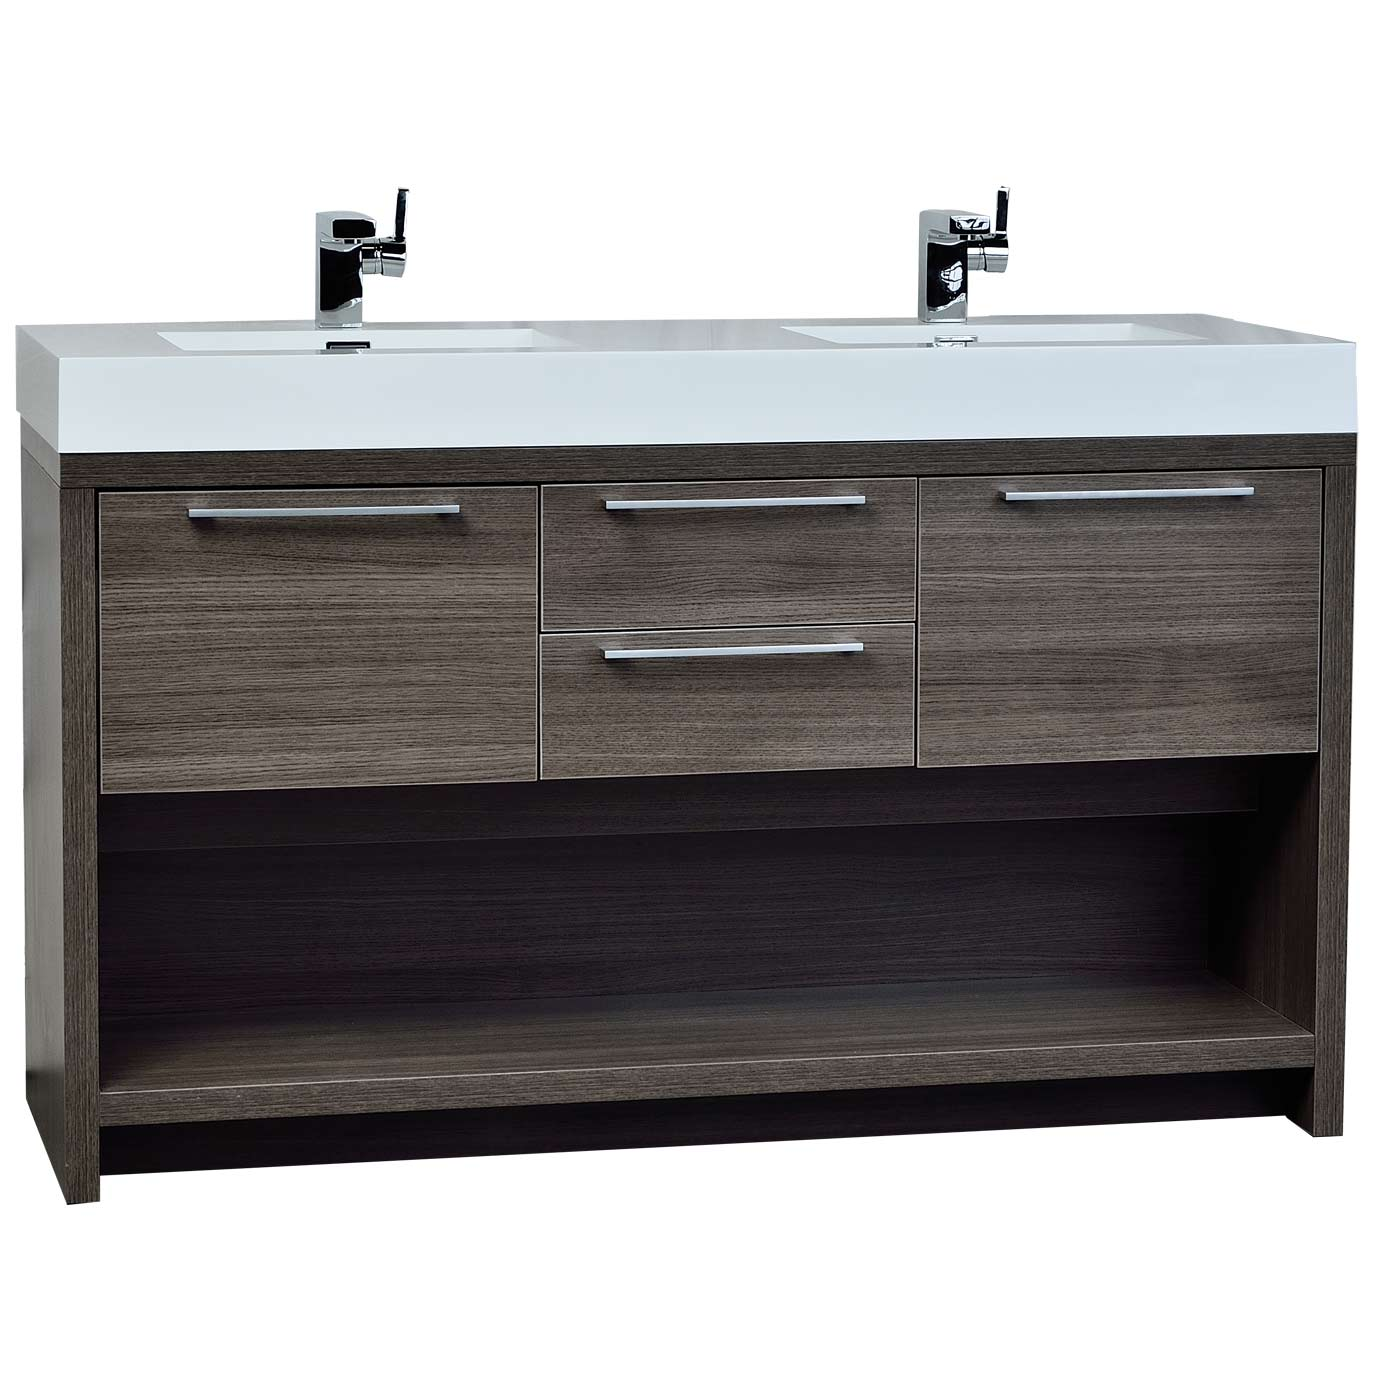 buy lodi  inch contemporary doublesink vanity in grey oak tn  - lodi  contemporary doublesink vanity in grey oak tnfago